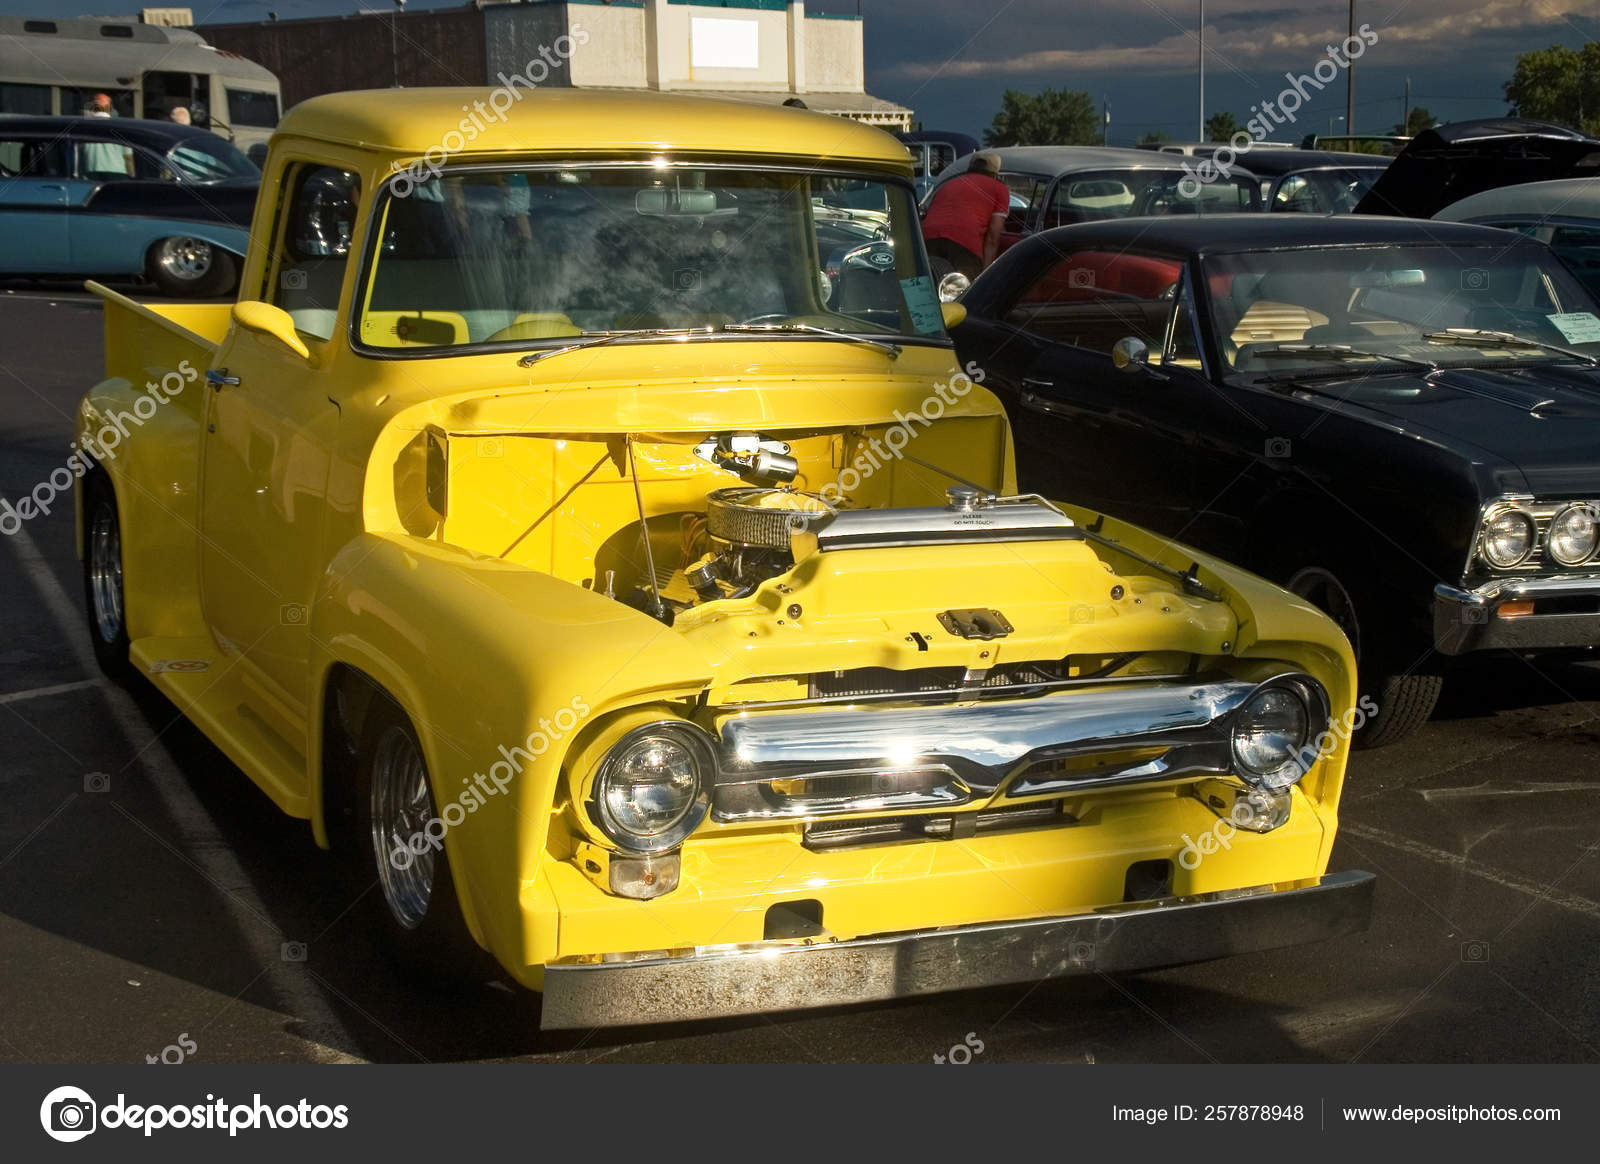 50s Ford Truck >> Classic Yellow 50s Ford Hotrod Pickup Stock Editorial